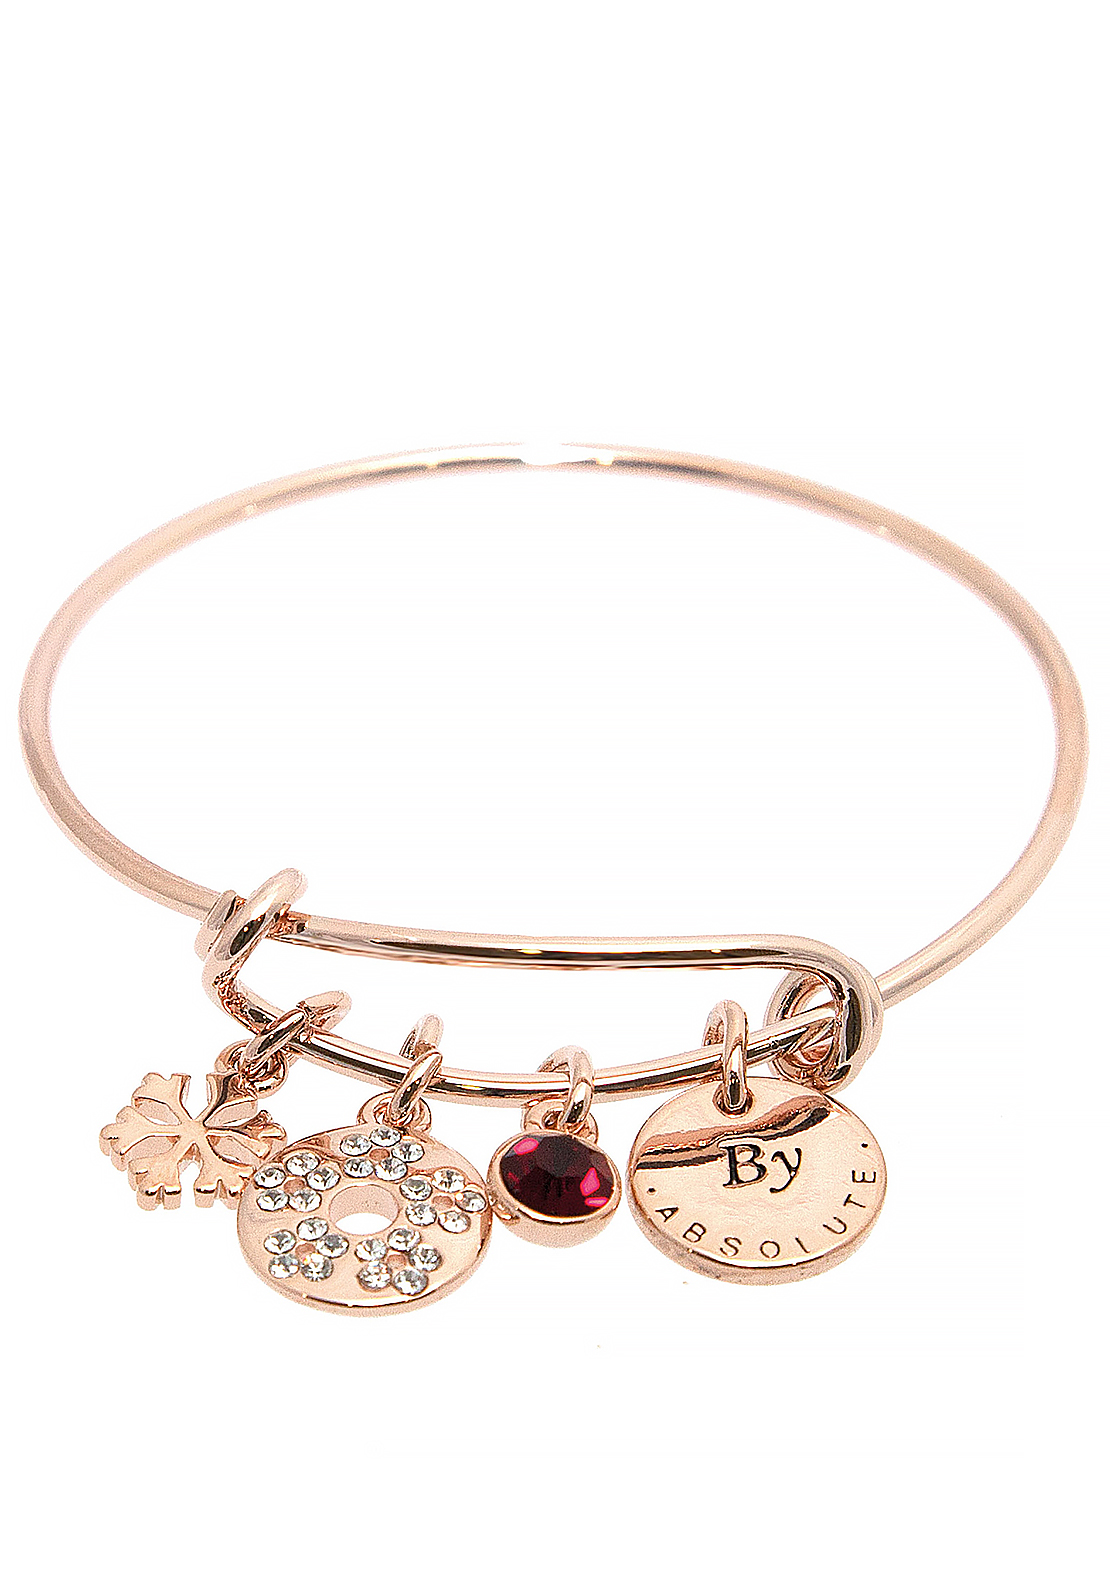 Absolute Jewellery Girls January Charm Bangle, Rose Gold